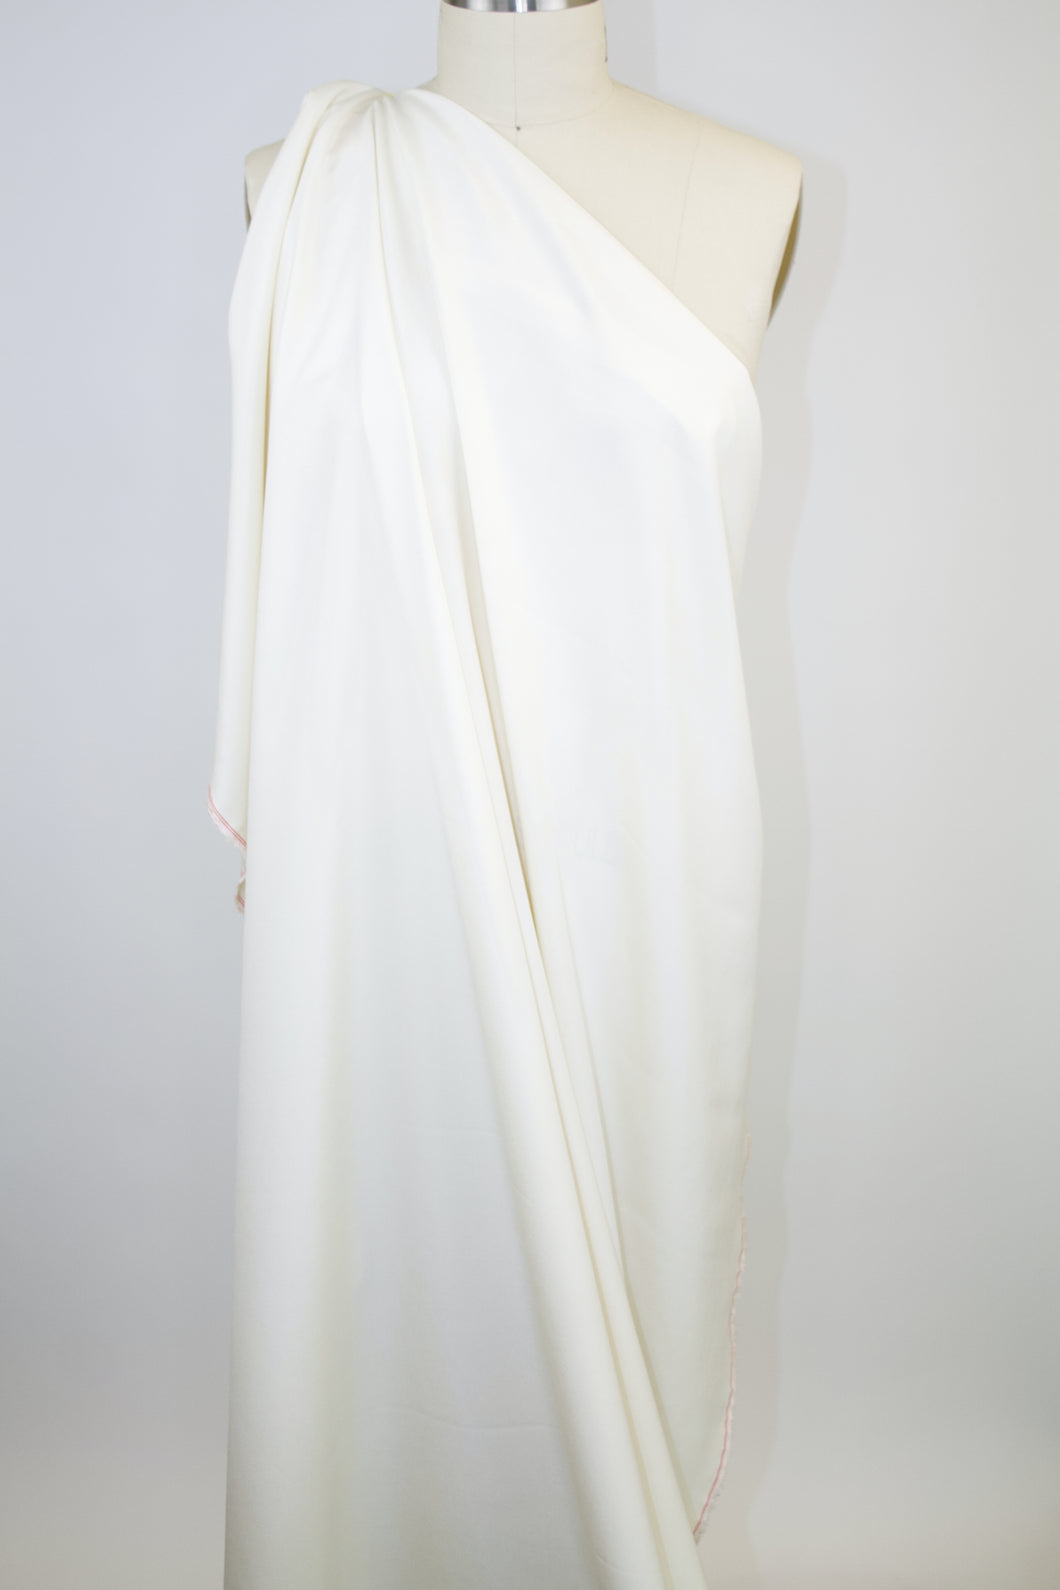 Italian Silk/Cotton Shirting - Whisper White